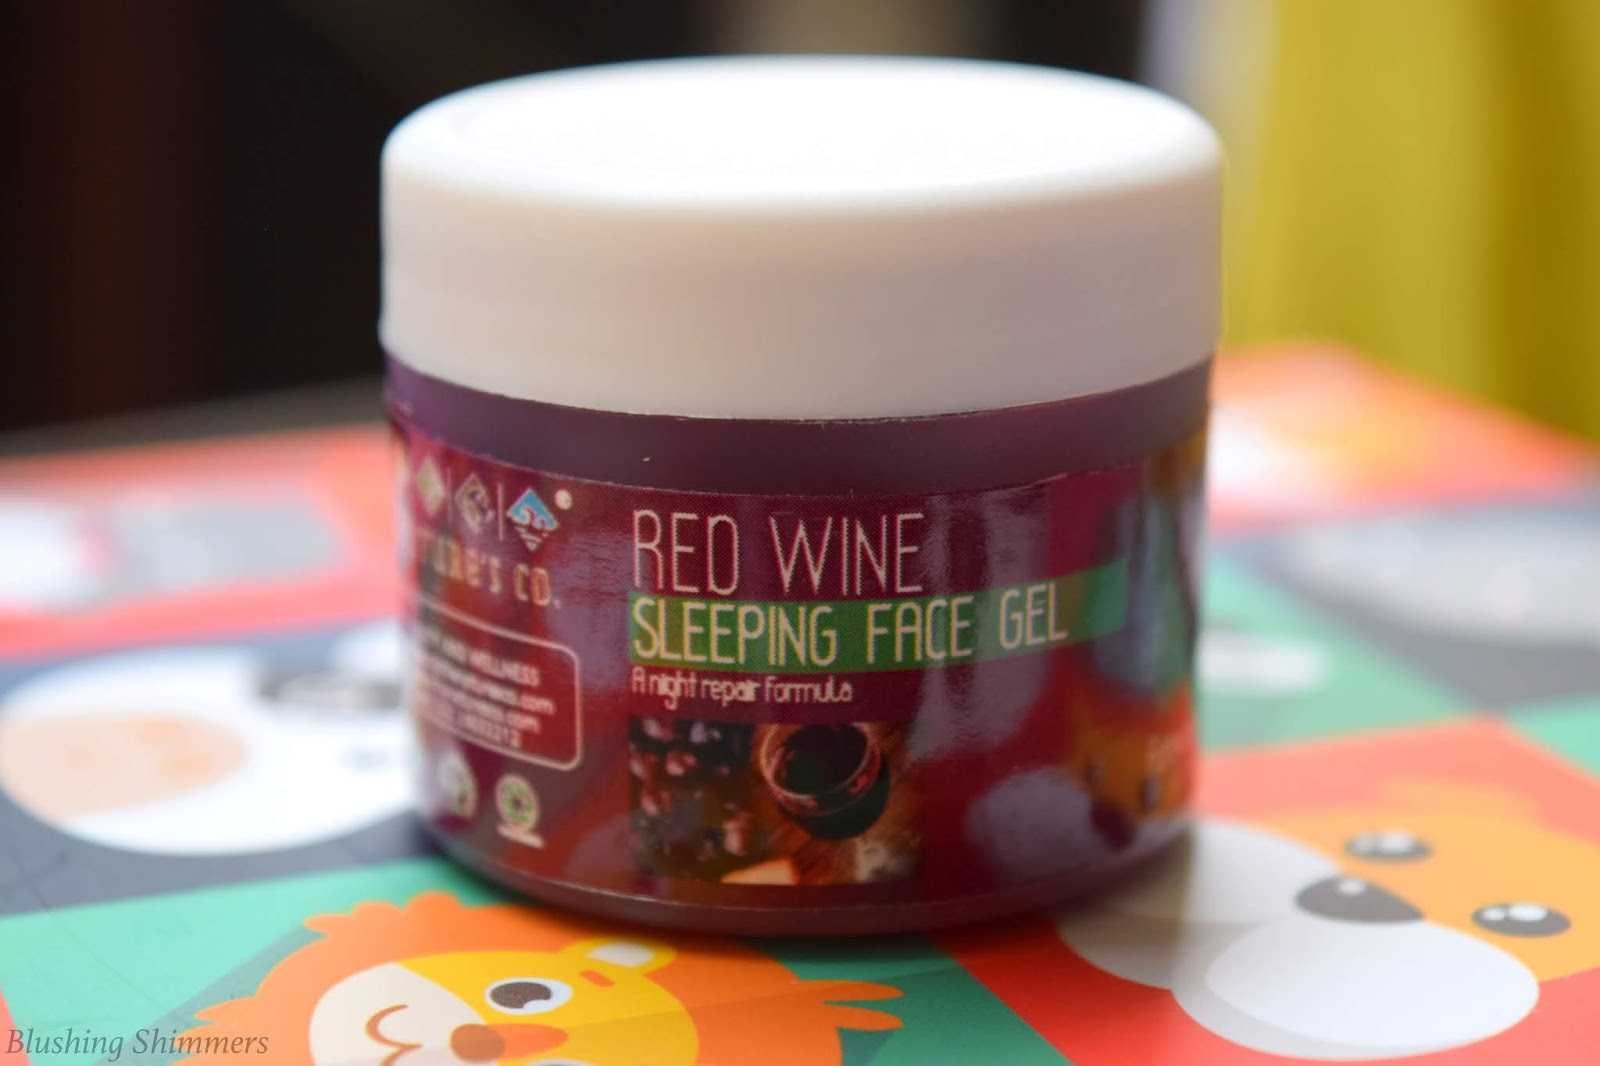 The Natures Co Red Wine Sleeping Face Gel